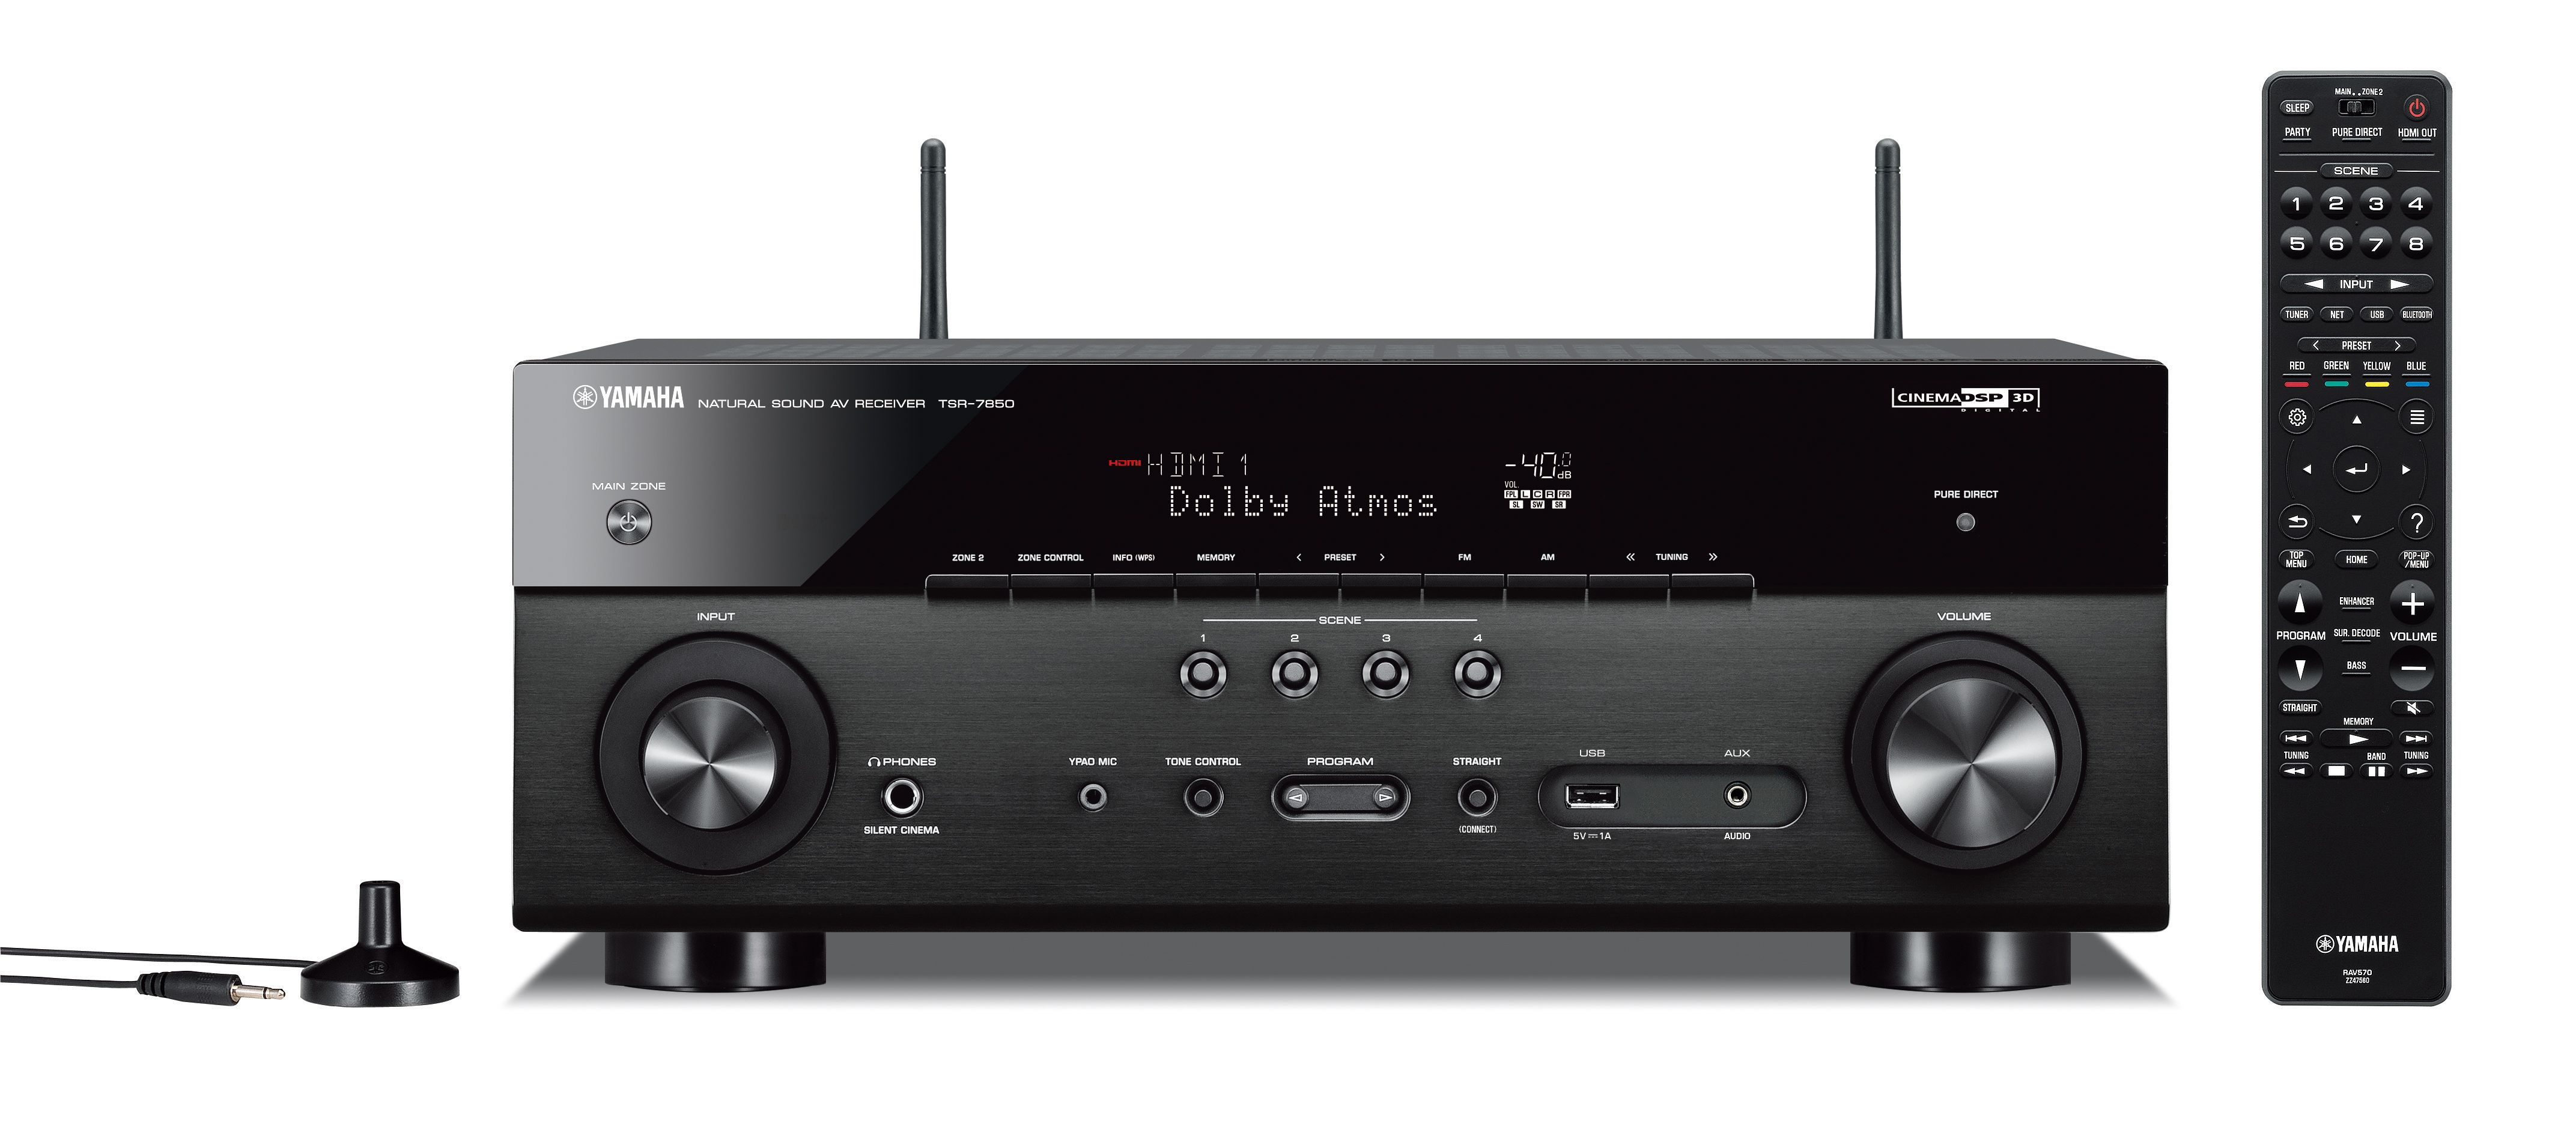 TSR-7850 - Overview - AV Receivers - Audio & Visual